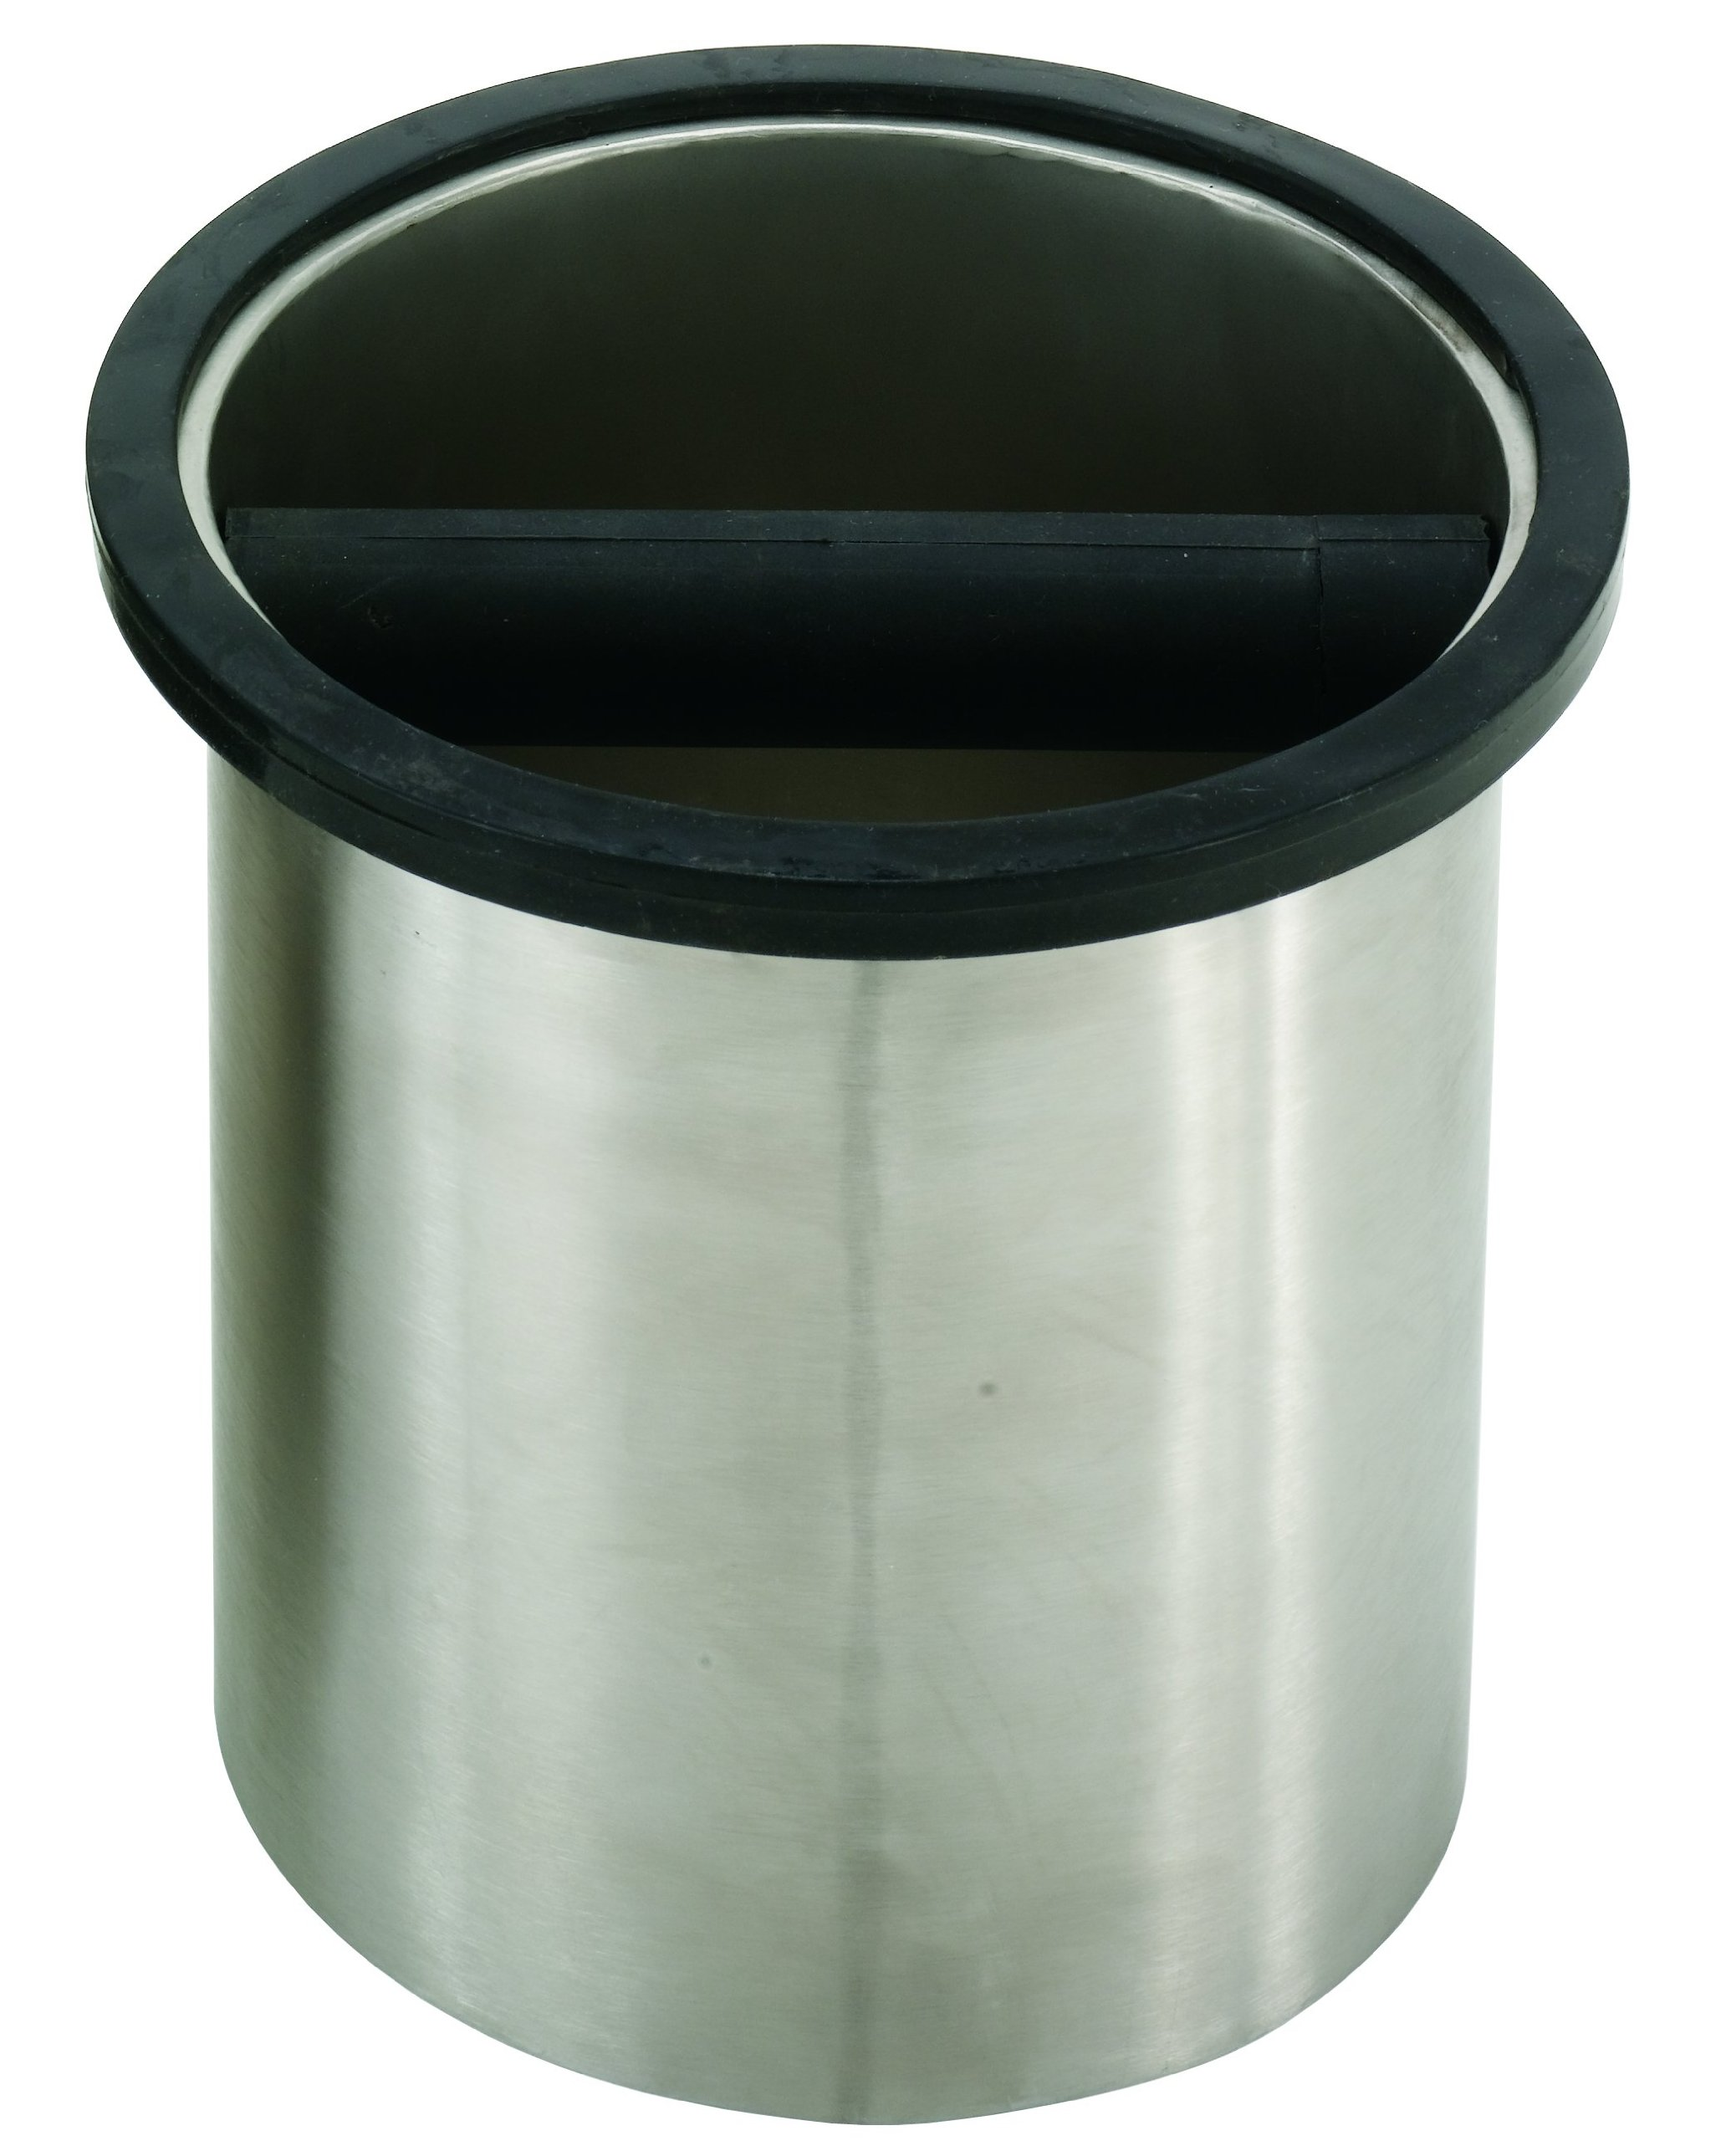 Rattleware Knock Box, Round, 6-1/4 by 7-1/2-Inch